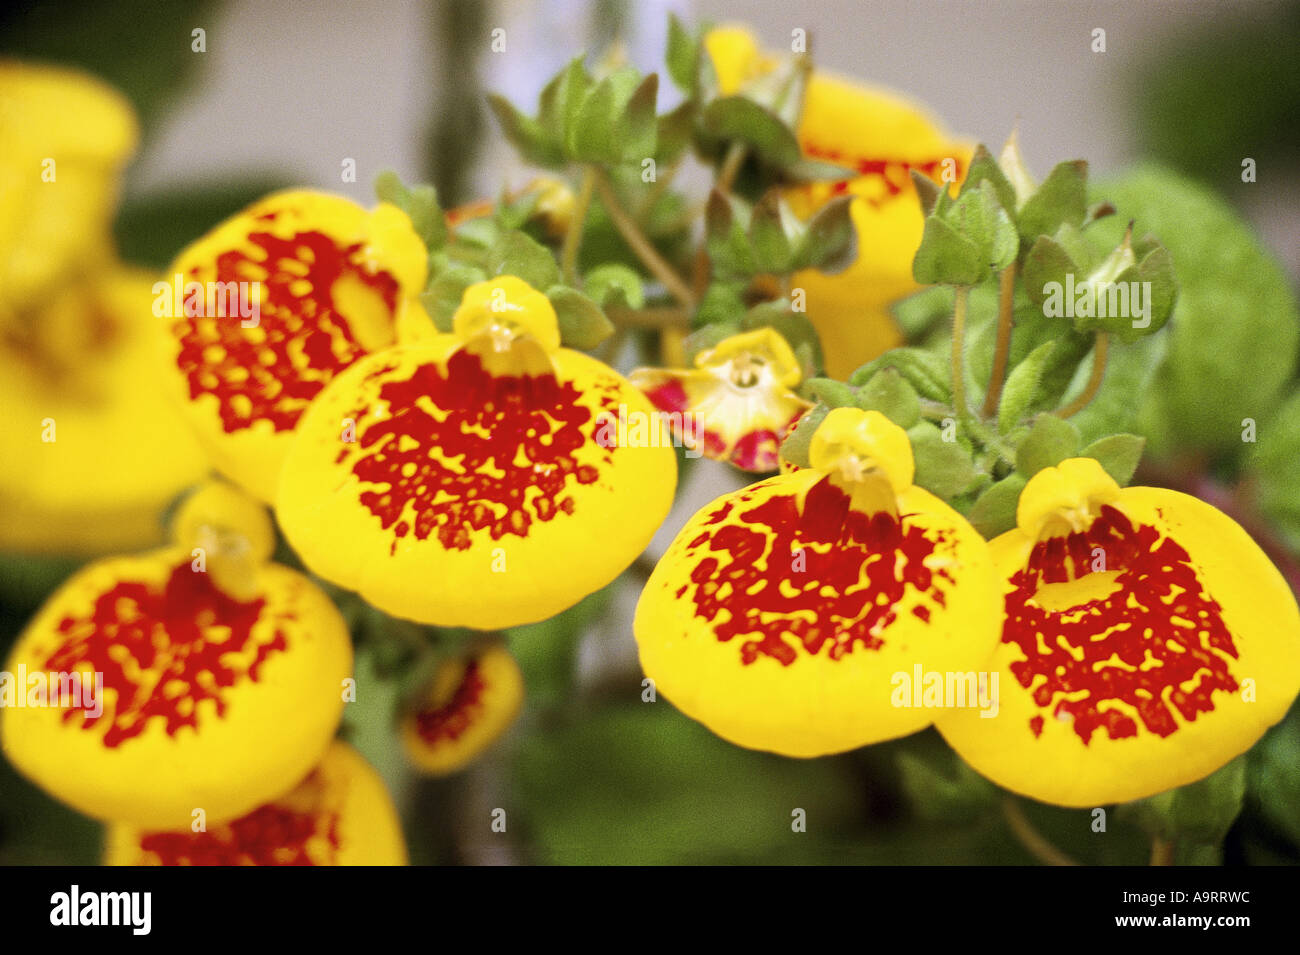 Orchid flowers india stock photos orchid flowers india stock unusual shape yellow color with red colour center five flowers round circular sphere spherical india asia dhlflorist Image collections